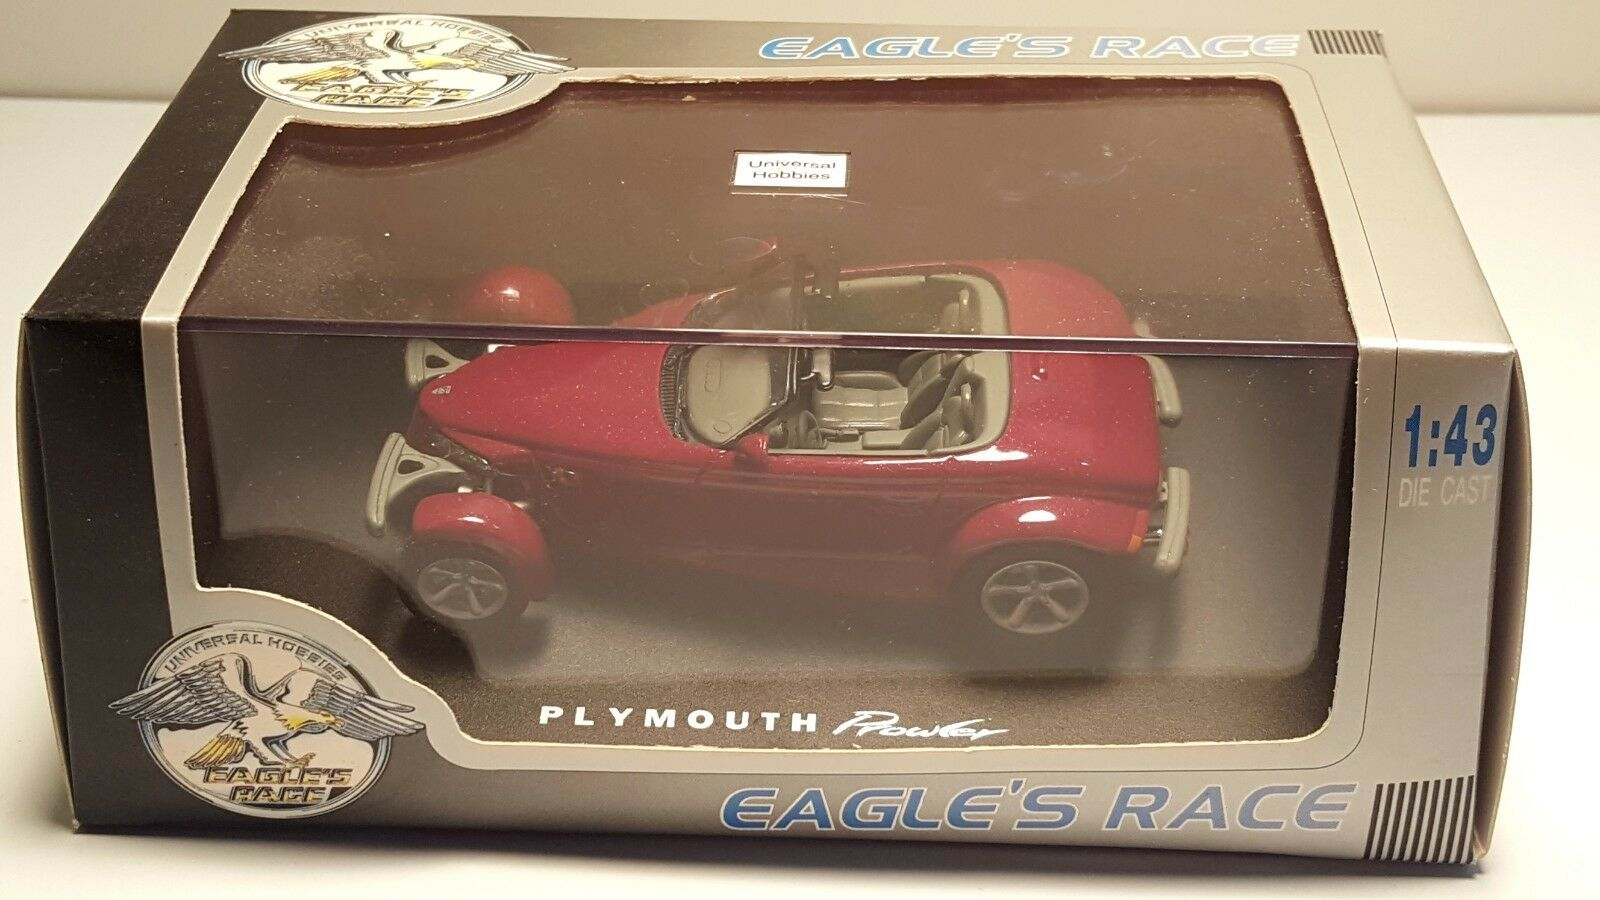 Universal Hobbies Plymouth Prowler Eagle's Race rosso 1 43 Diecast Coche Converdeible